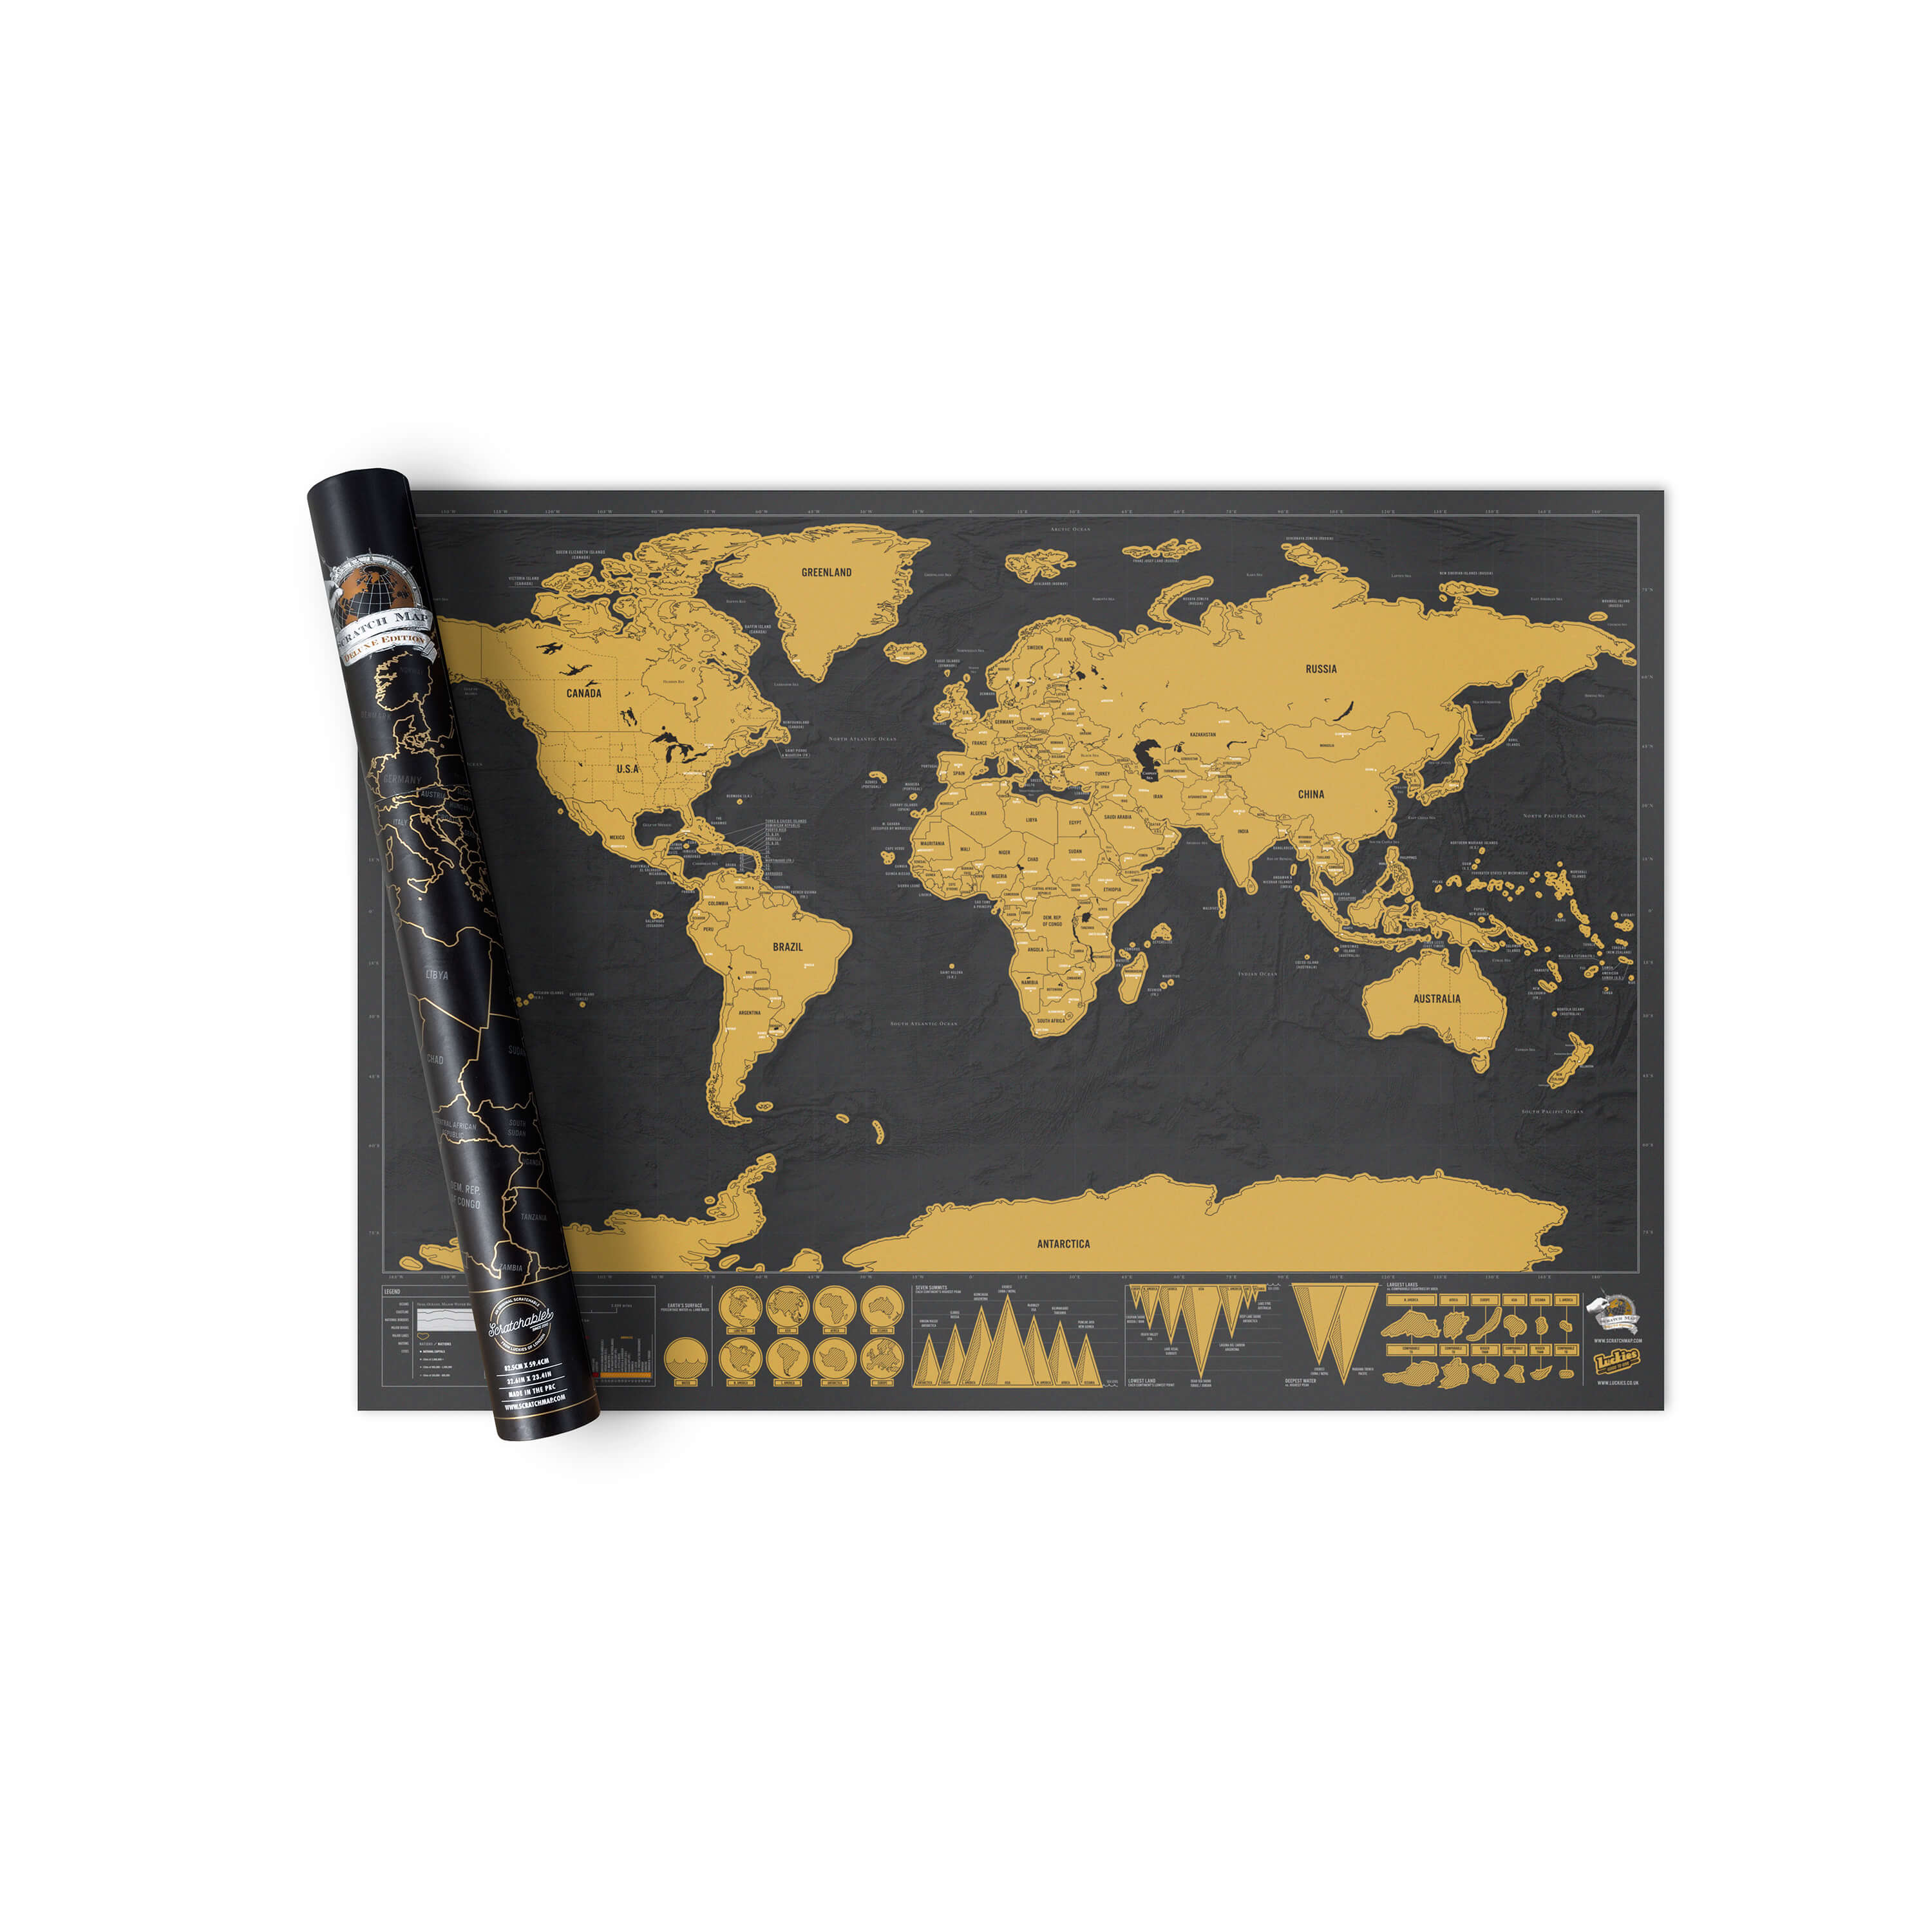 Scratch map maps personalised world map posters luckies scratch map deluxe gumiabroncs Images